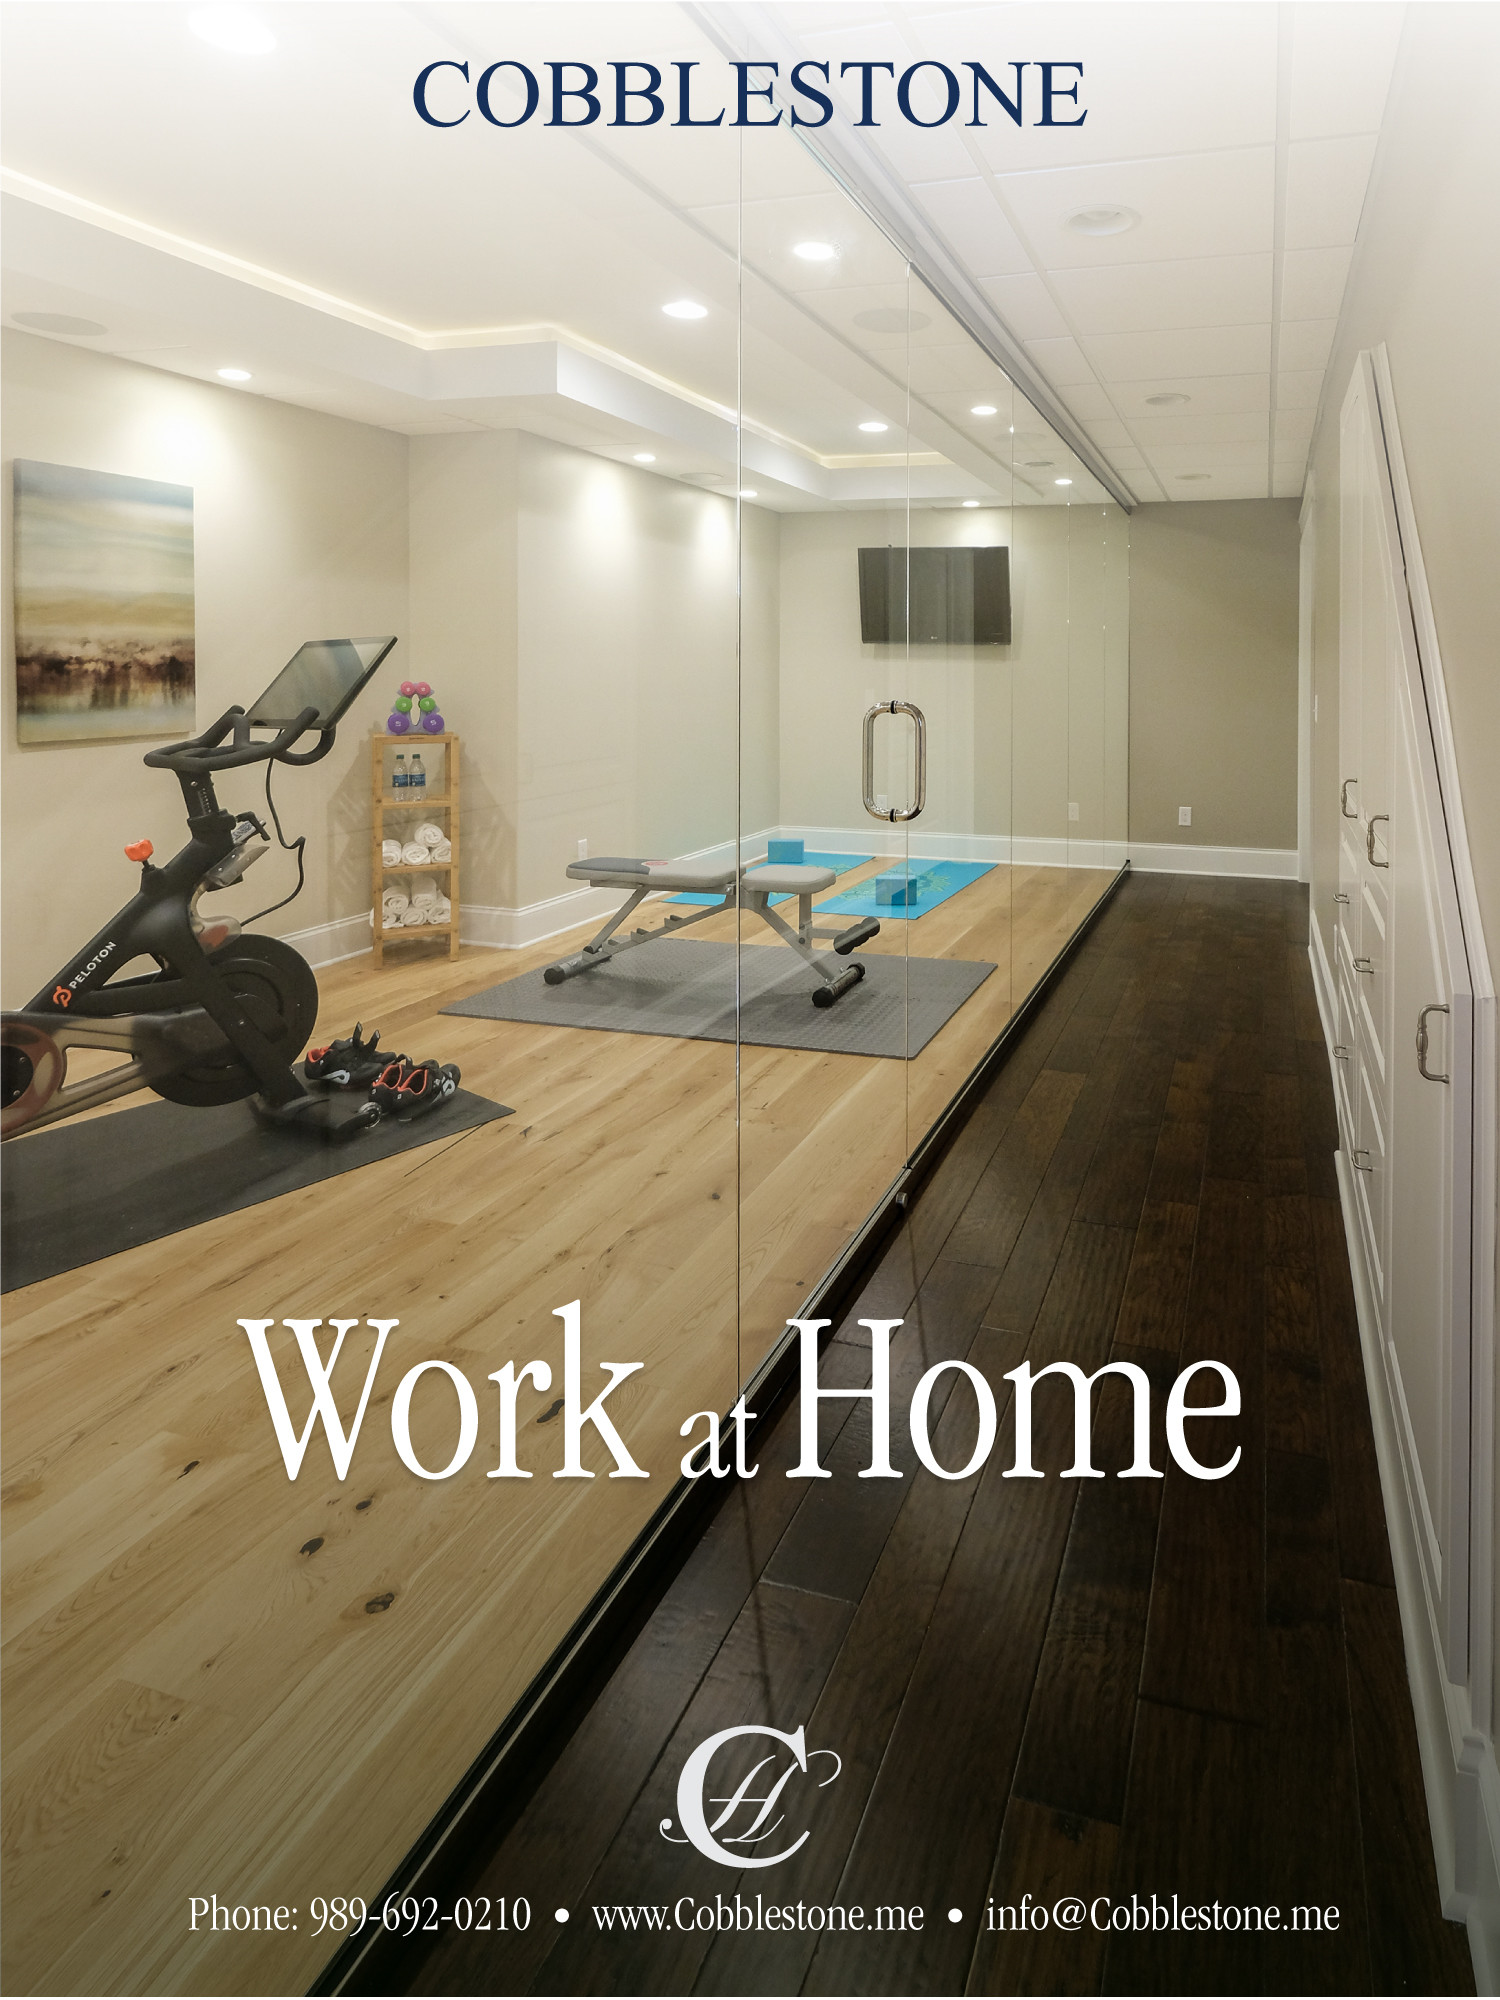 hardwood floor refinishing southeast michigan of cobblestone where innovation meets craftsmanship inside at cobblestone we have your style of living covered